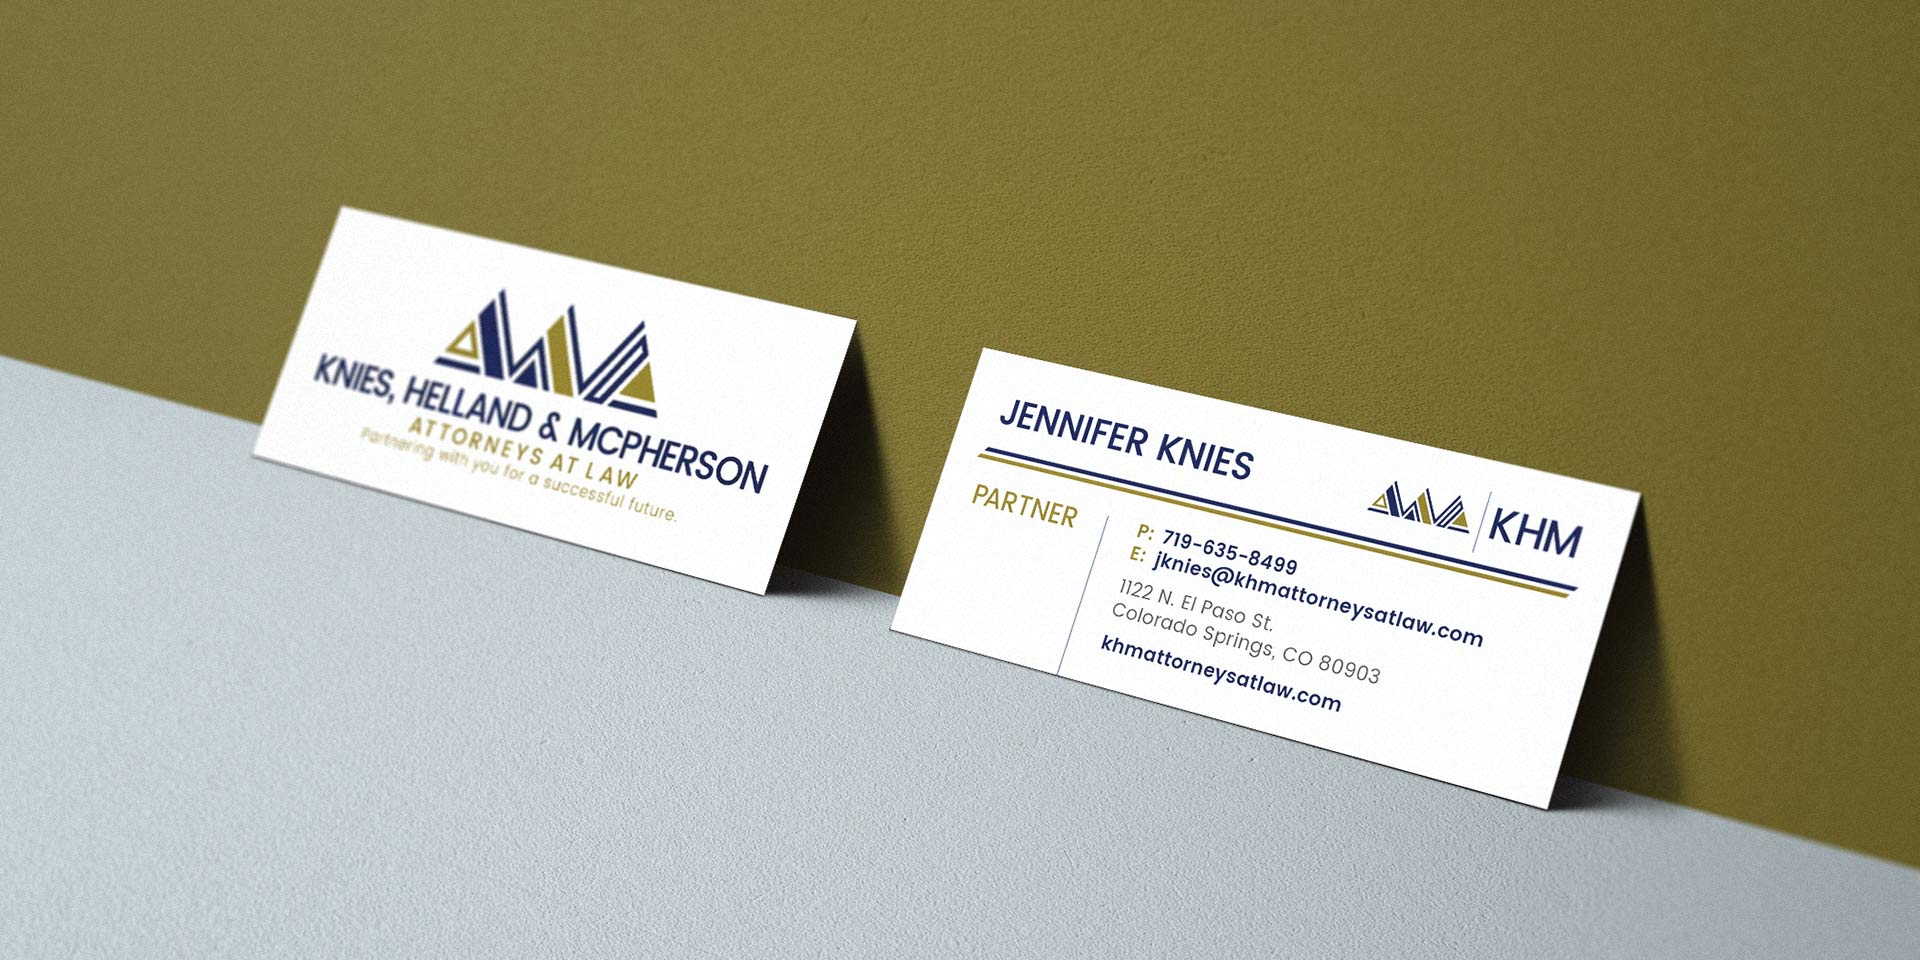 blakely-company-work-khm-attorneys-at-law-branding-business-cards ...